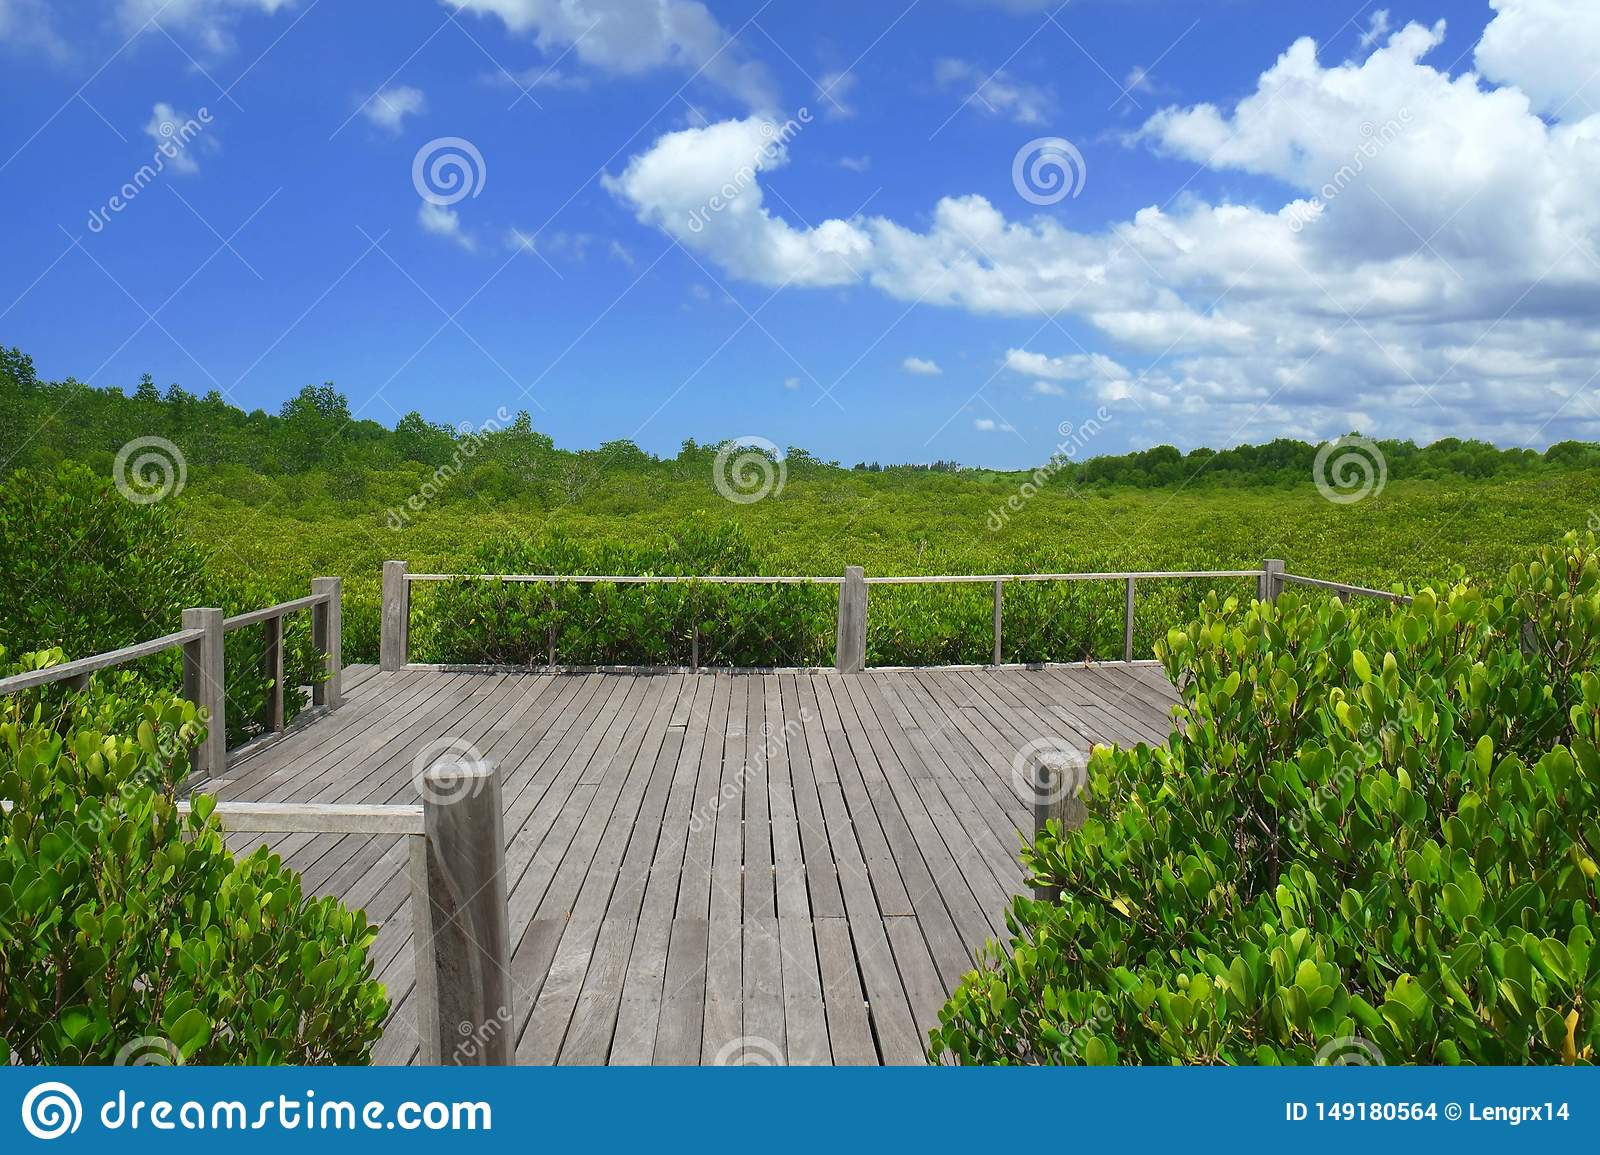 Wooden terrace with nature green